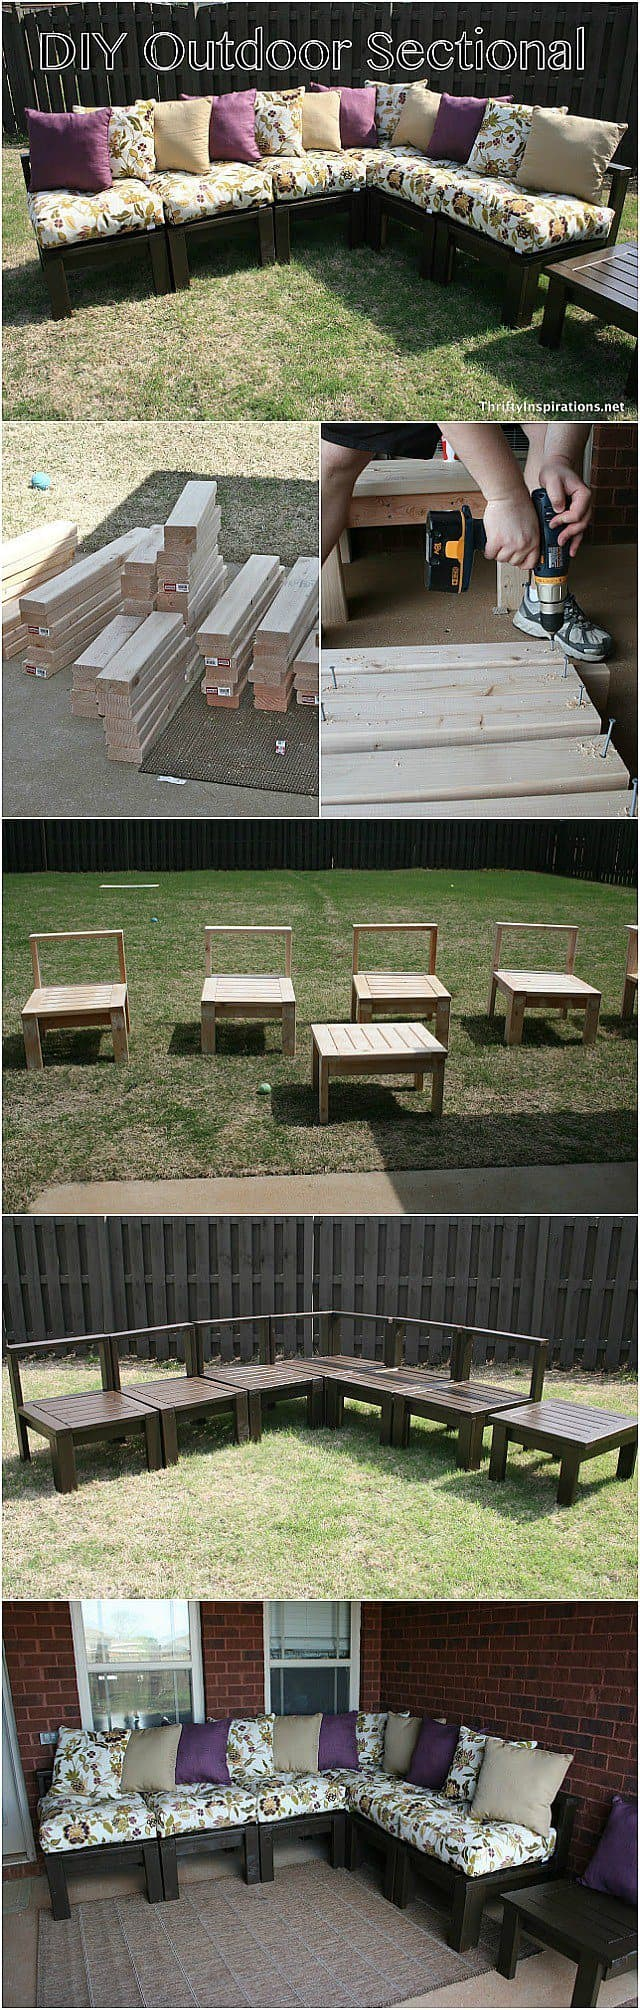 A DIY Outdoor Wooden Sectional Couch For Any Occasion